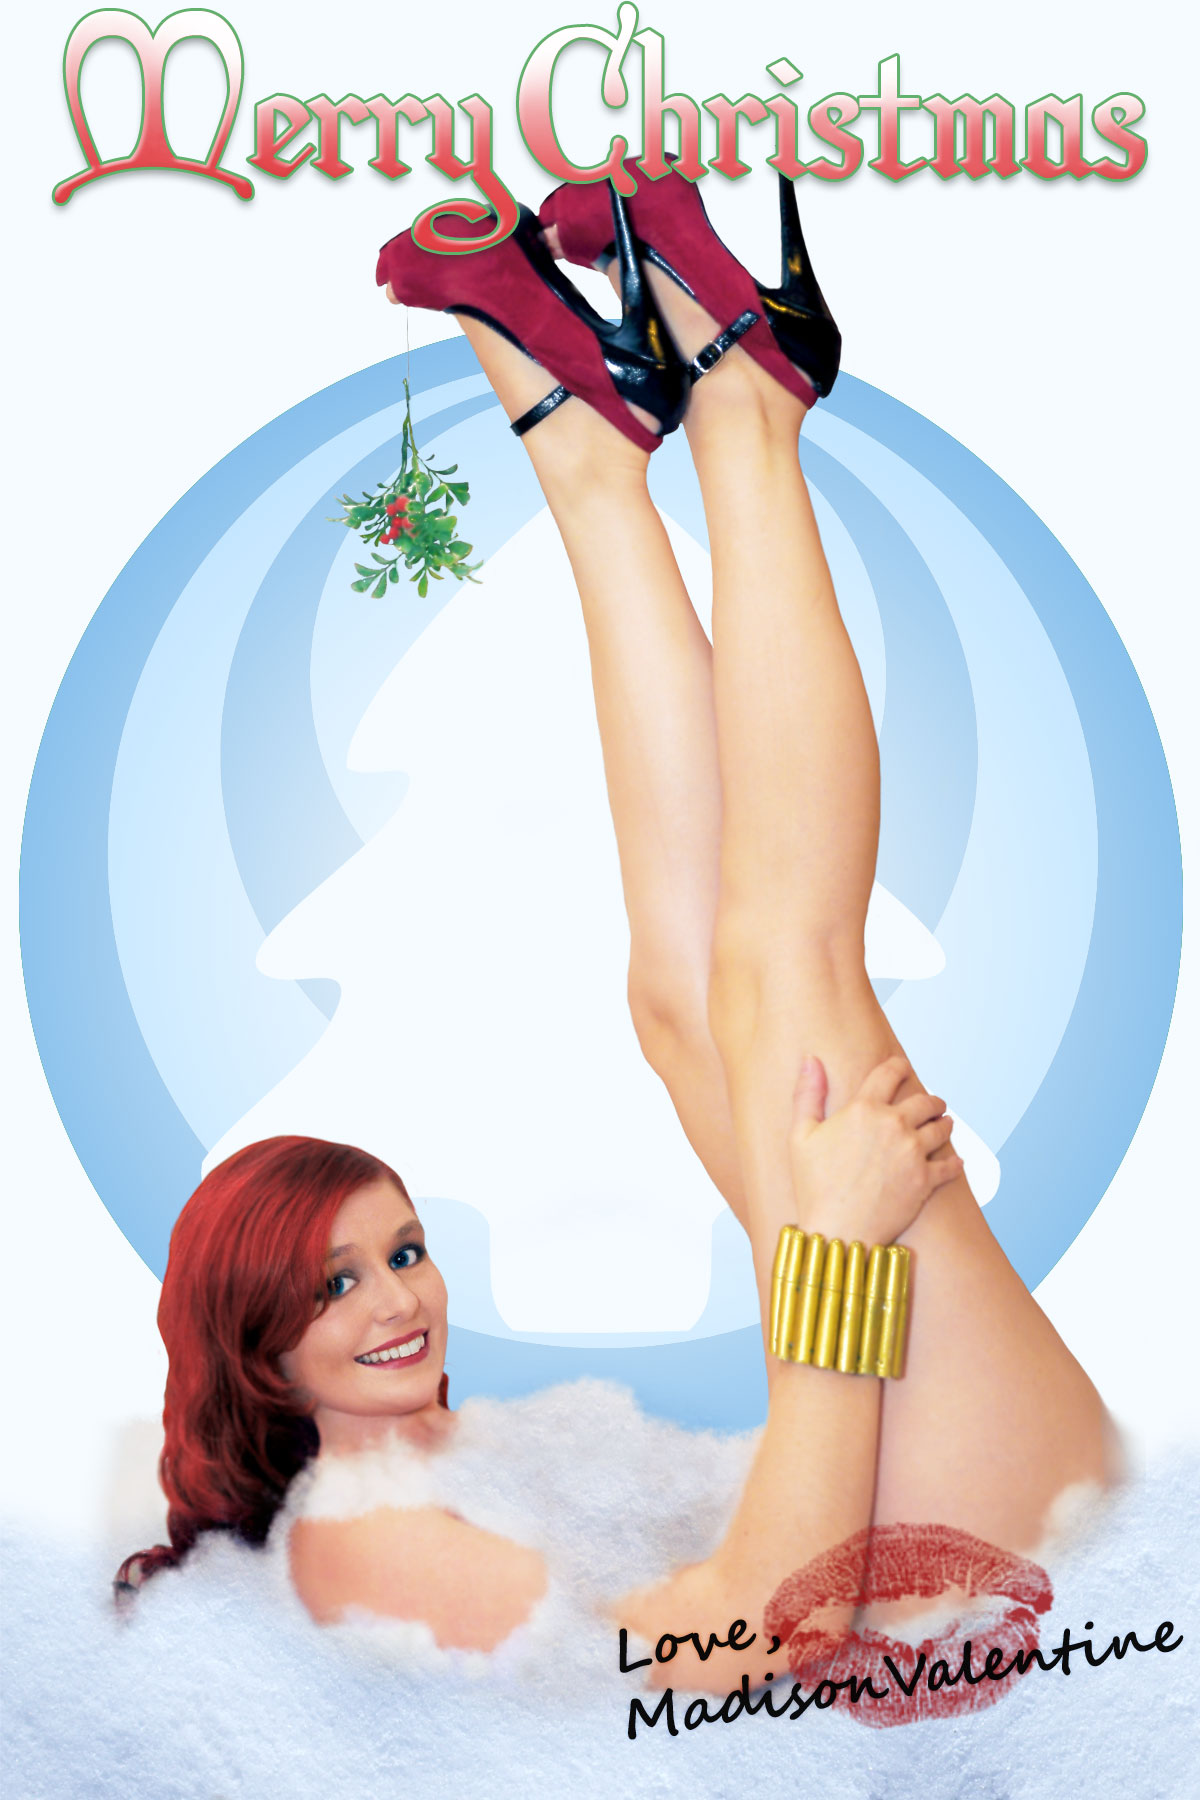 2011 Christmas Card from Madison by CosplayDeviants